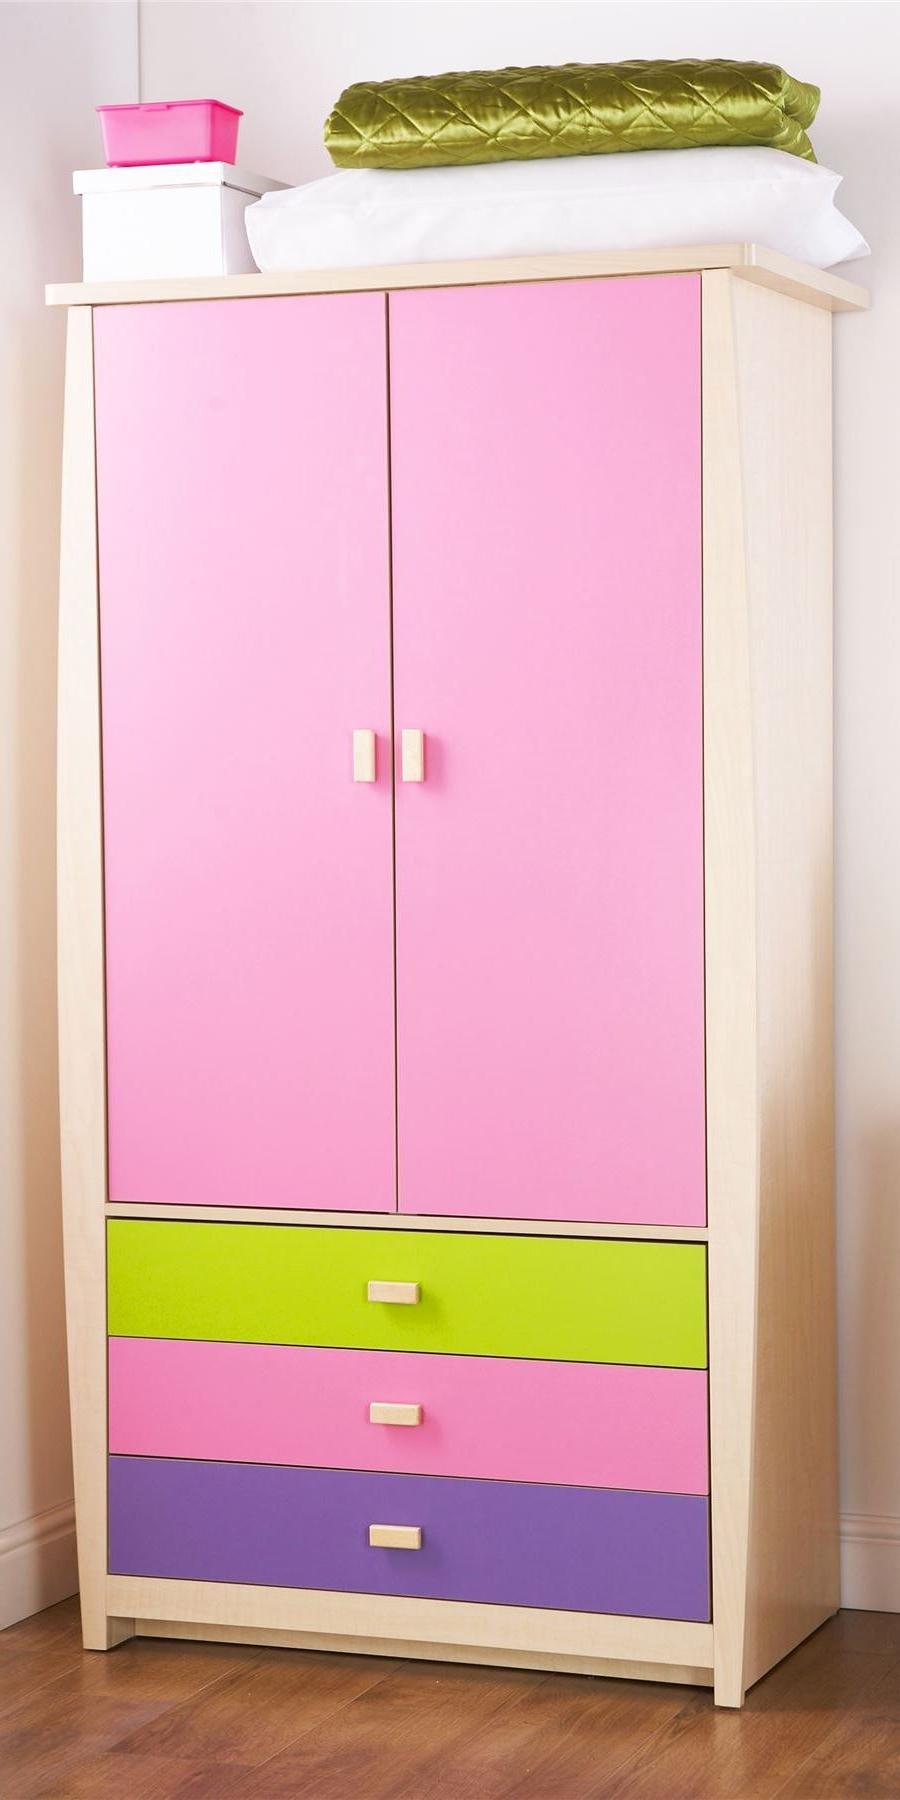 Most Recent Pink Sydney Range Set 3' Storage Bed Wardrobe Bedside Desk Drawer In Childrens Pink Wardrobes (View 9 of 15)